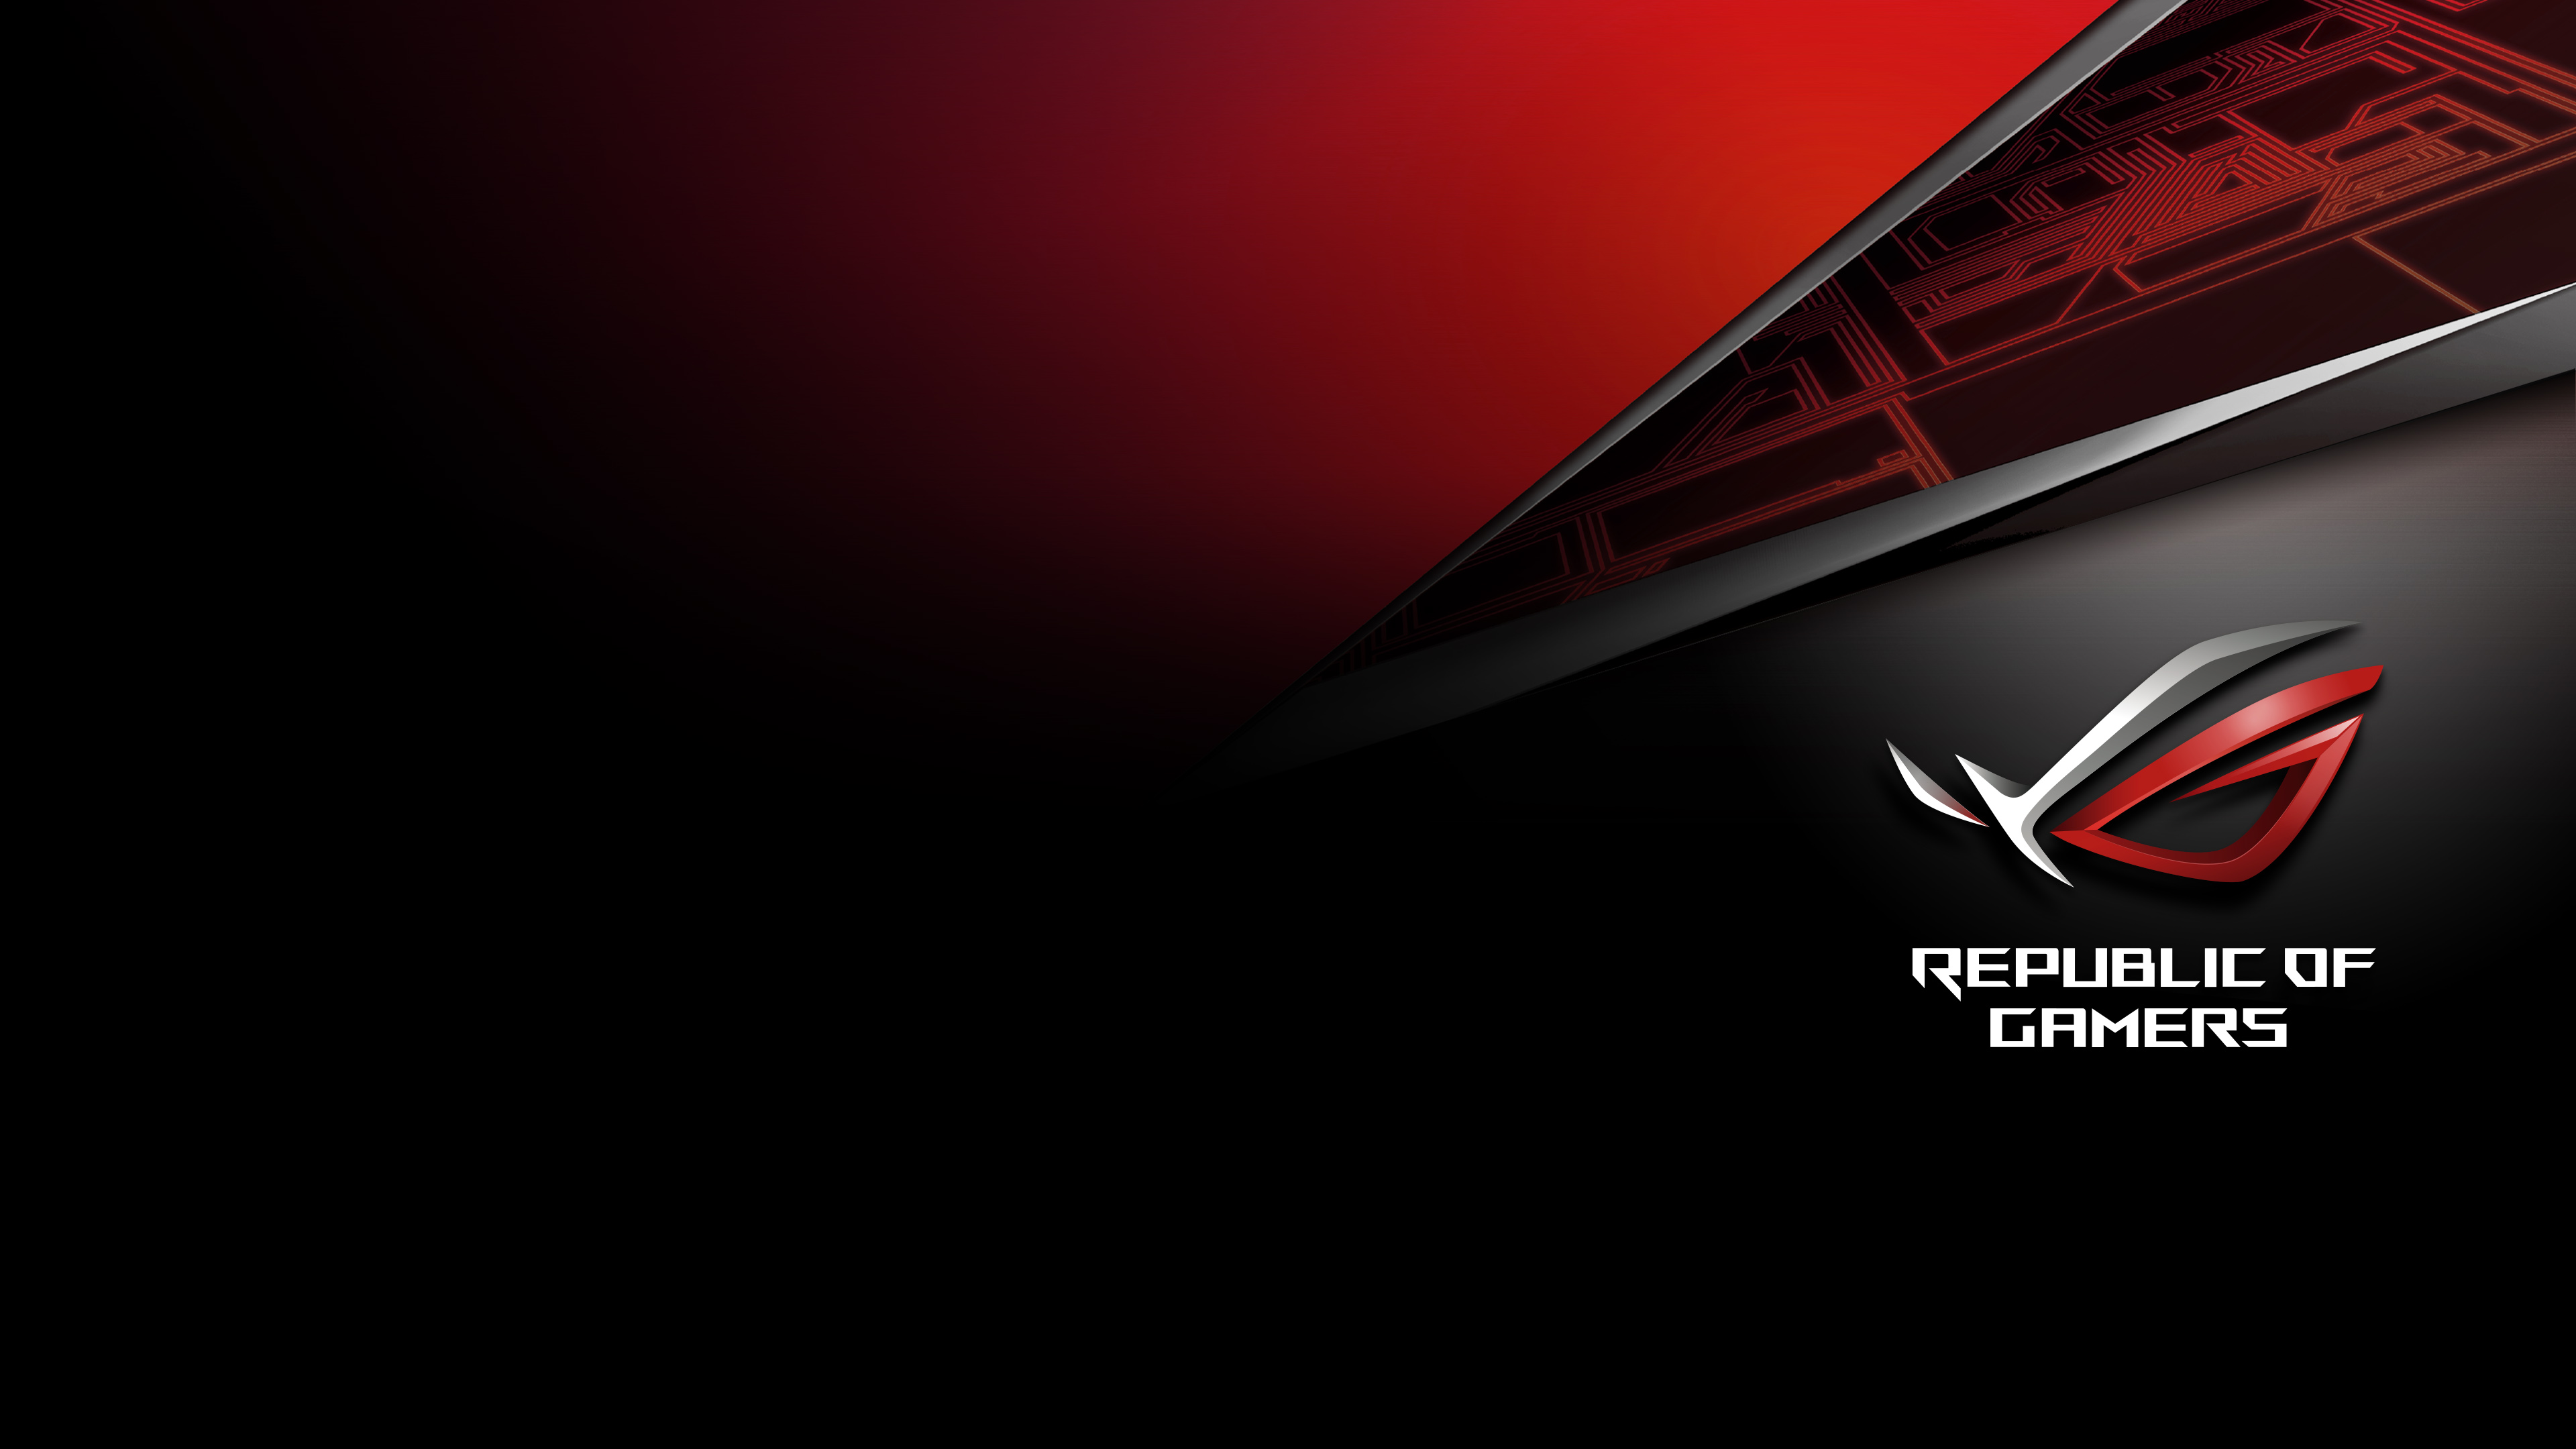 Win A ROG Zephyrus And PG27VQ Monitor: ROG Wallpaper